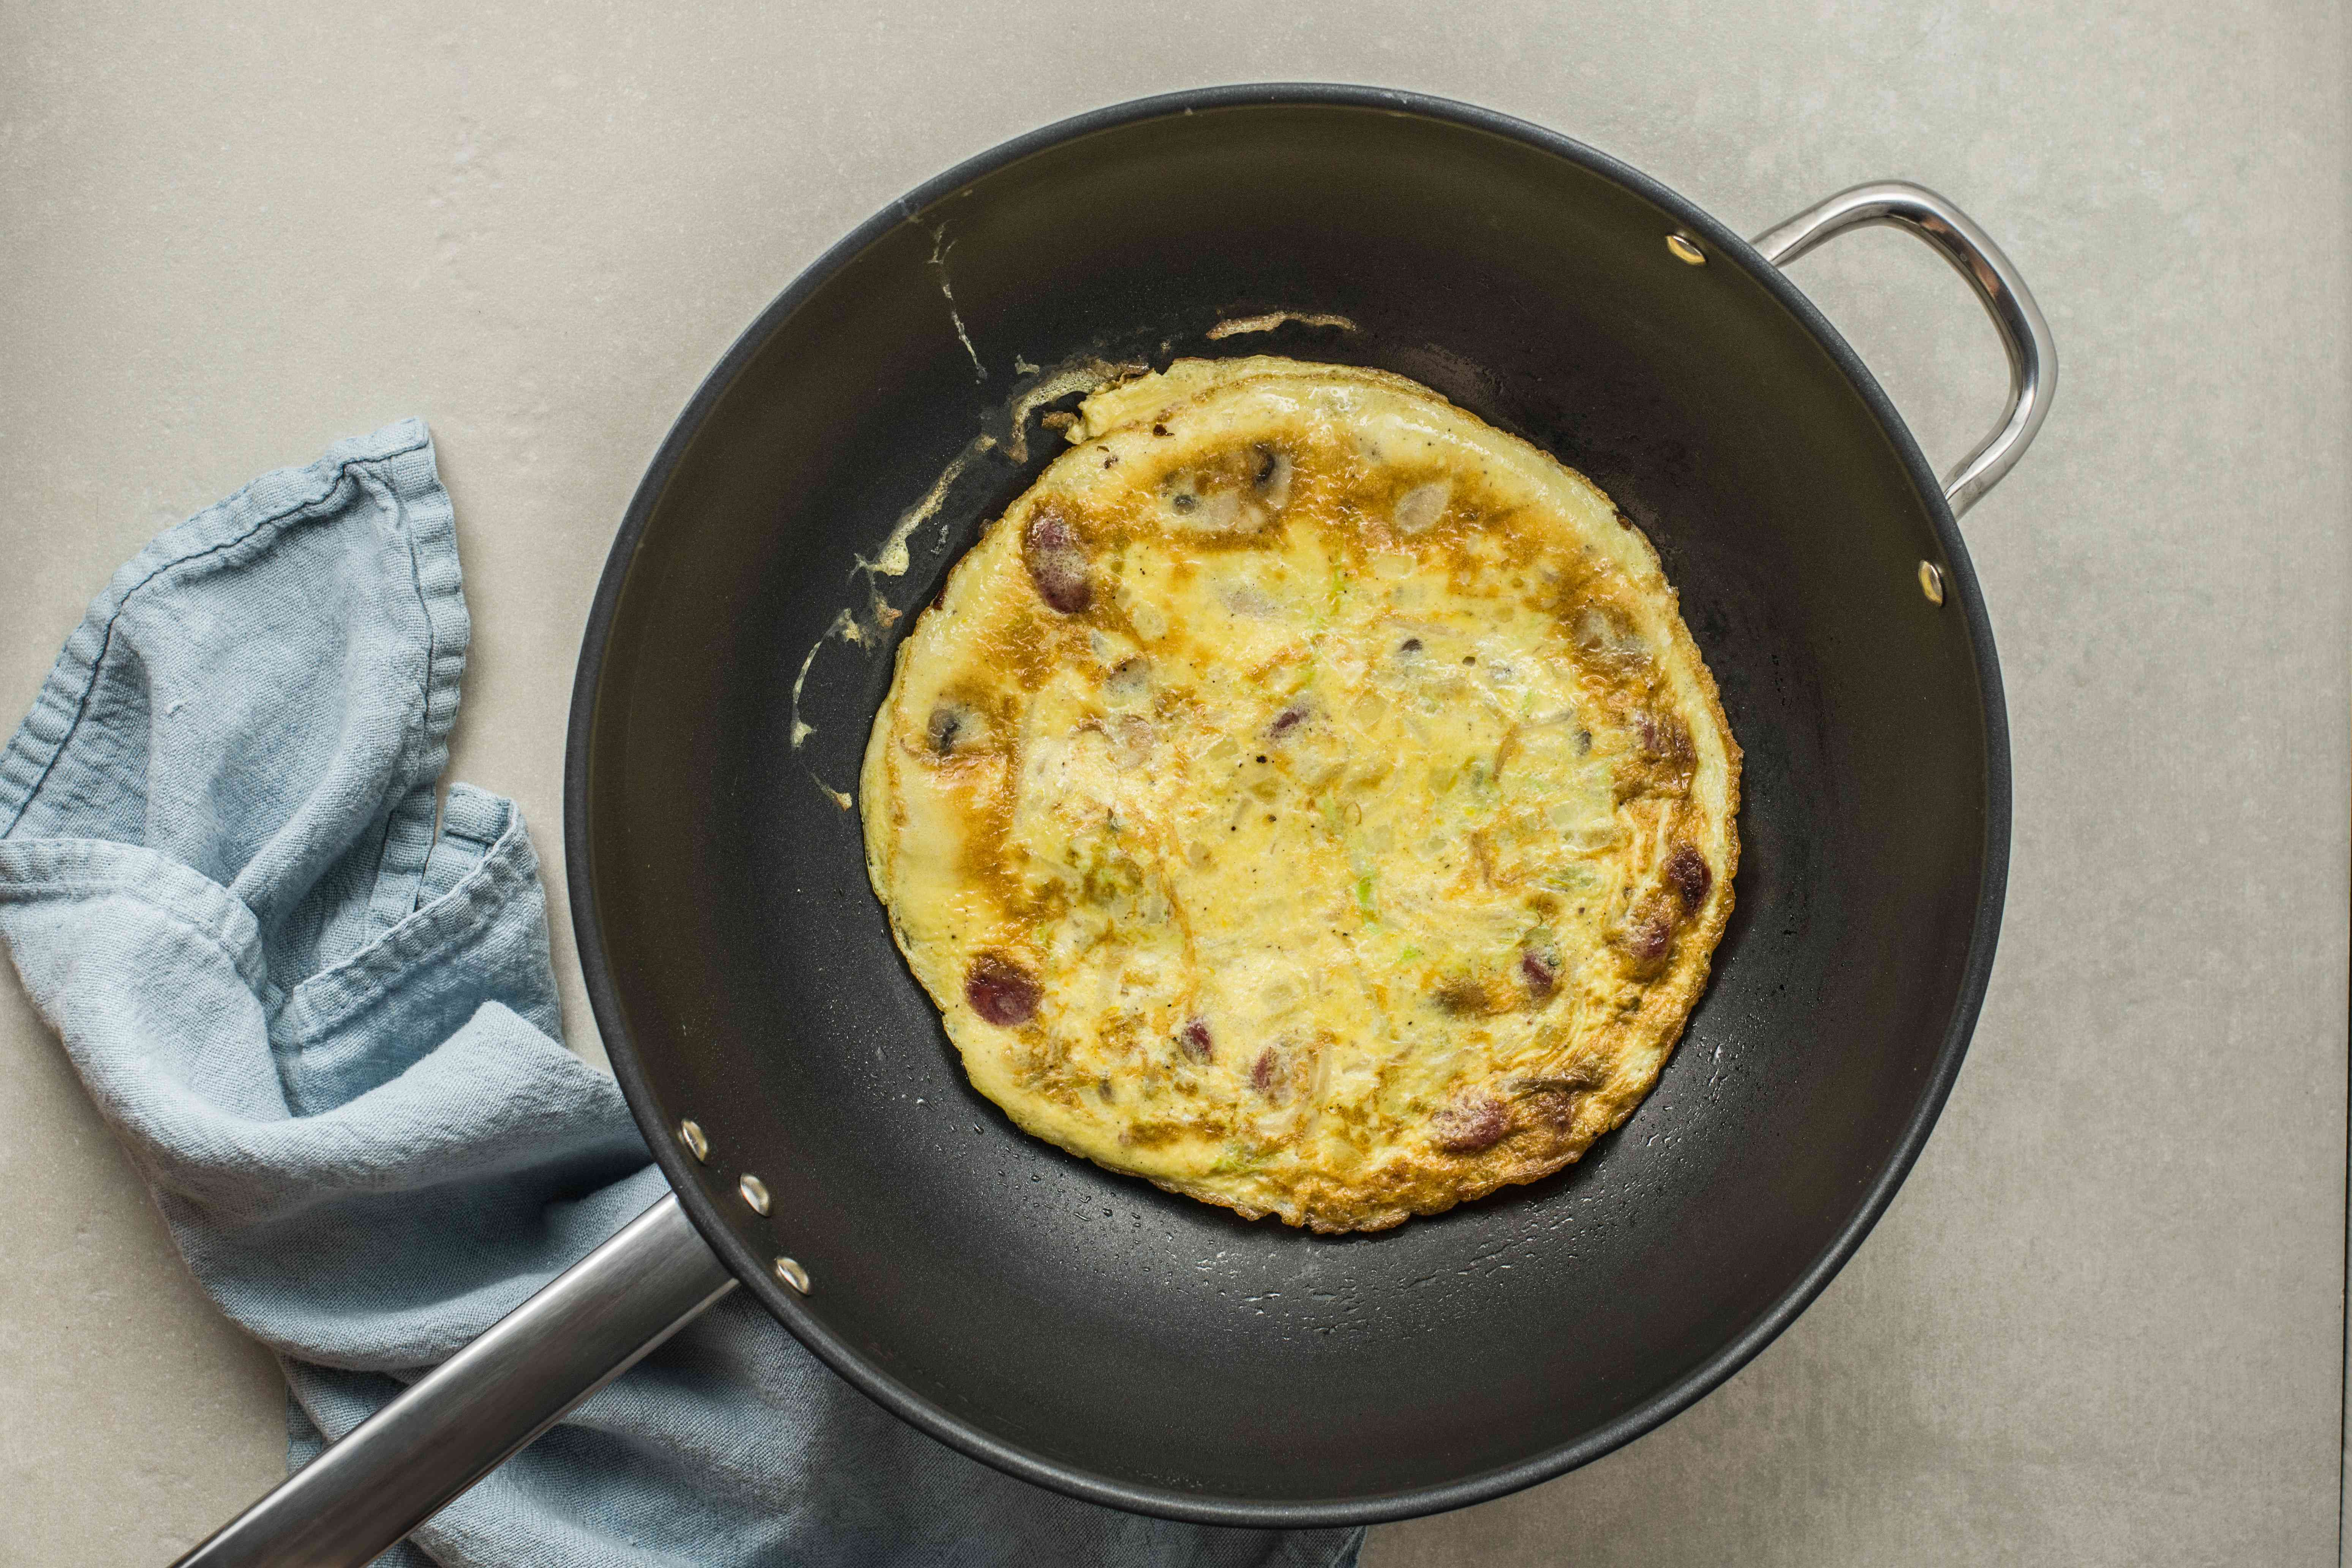 Flipped omelet in the pan